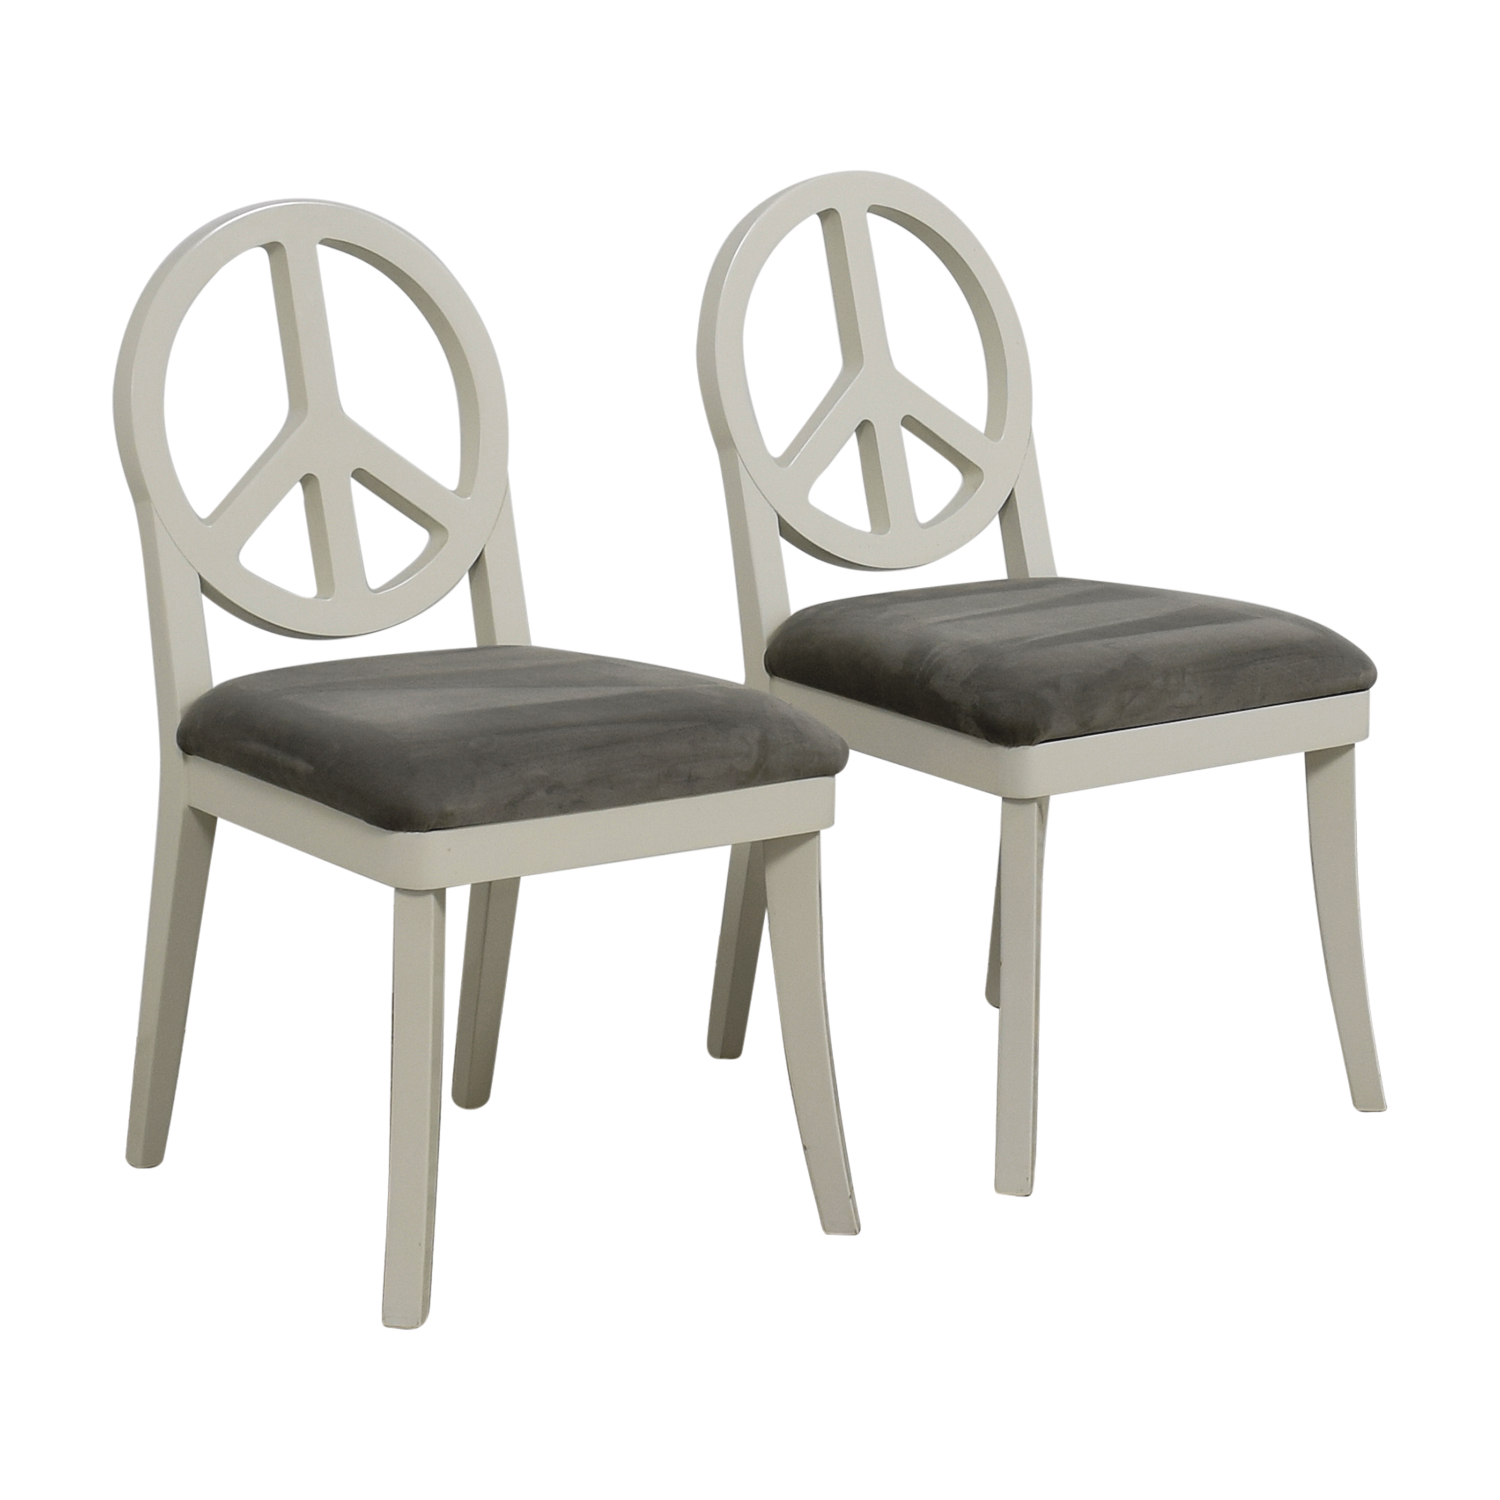 ... Happy Chic By Jonathan Adler Happy Chic By Jonathan Adler White And  Grey Peace Sign Accent ...